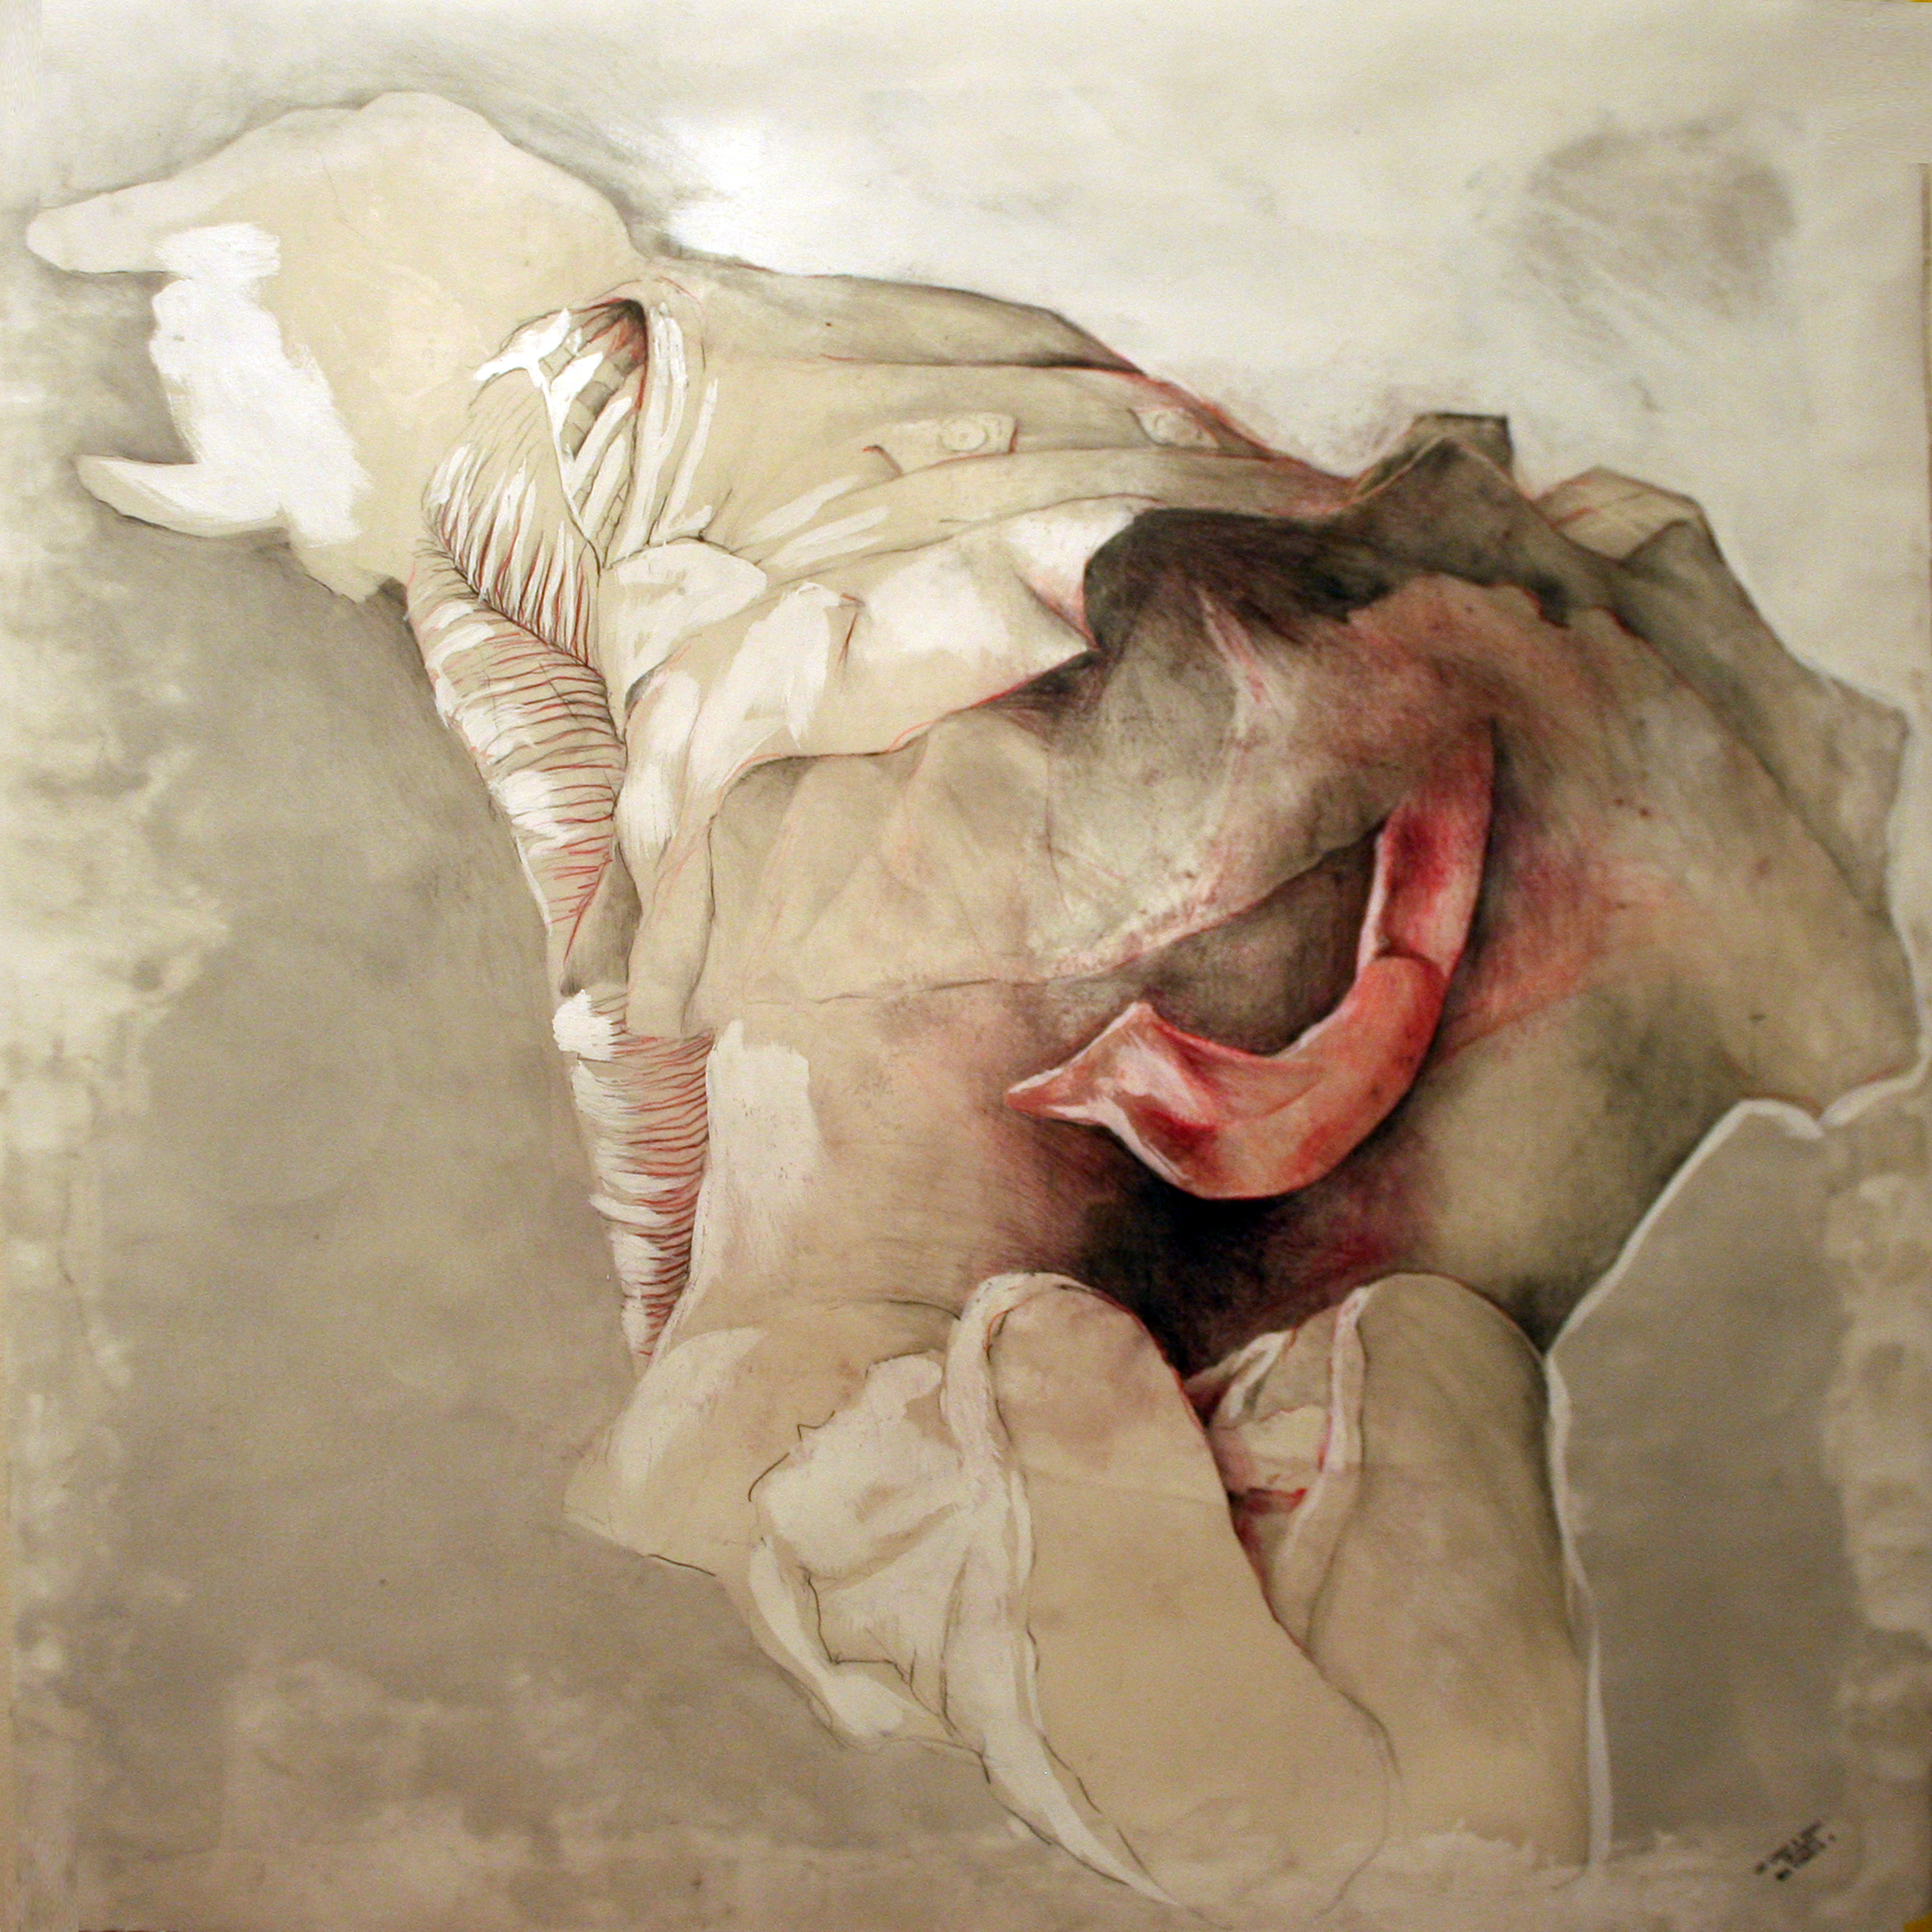 At least a snake n. 1/4 2012  pencil, pastels, chalk and wax on paper  40x40 inches